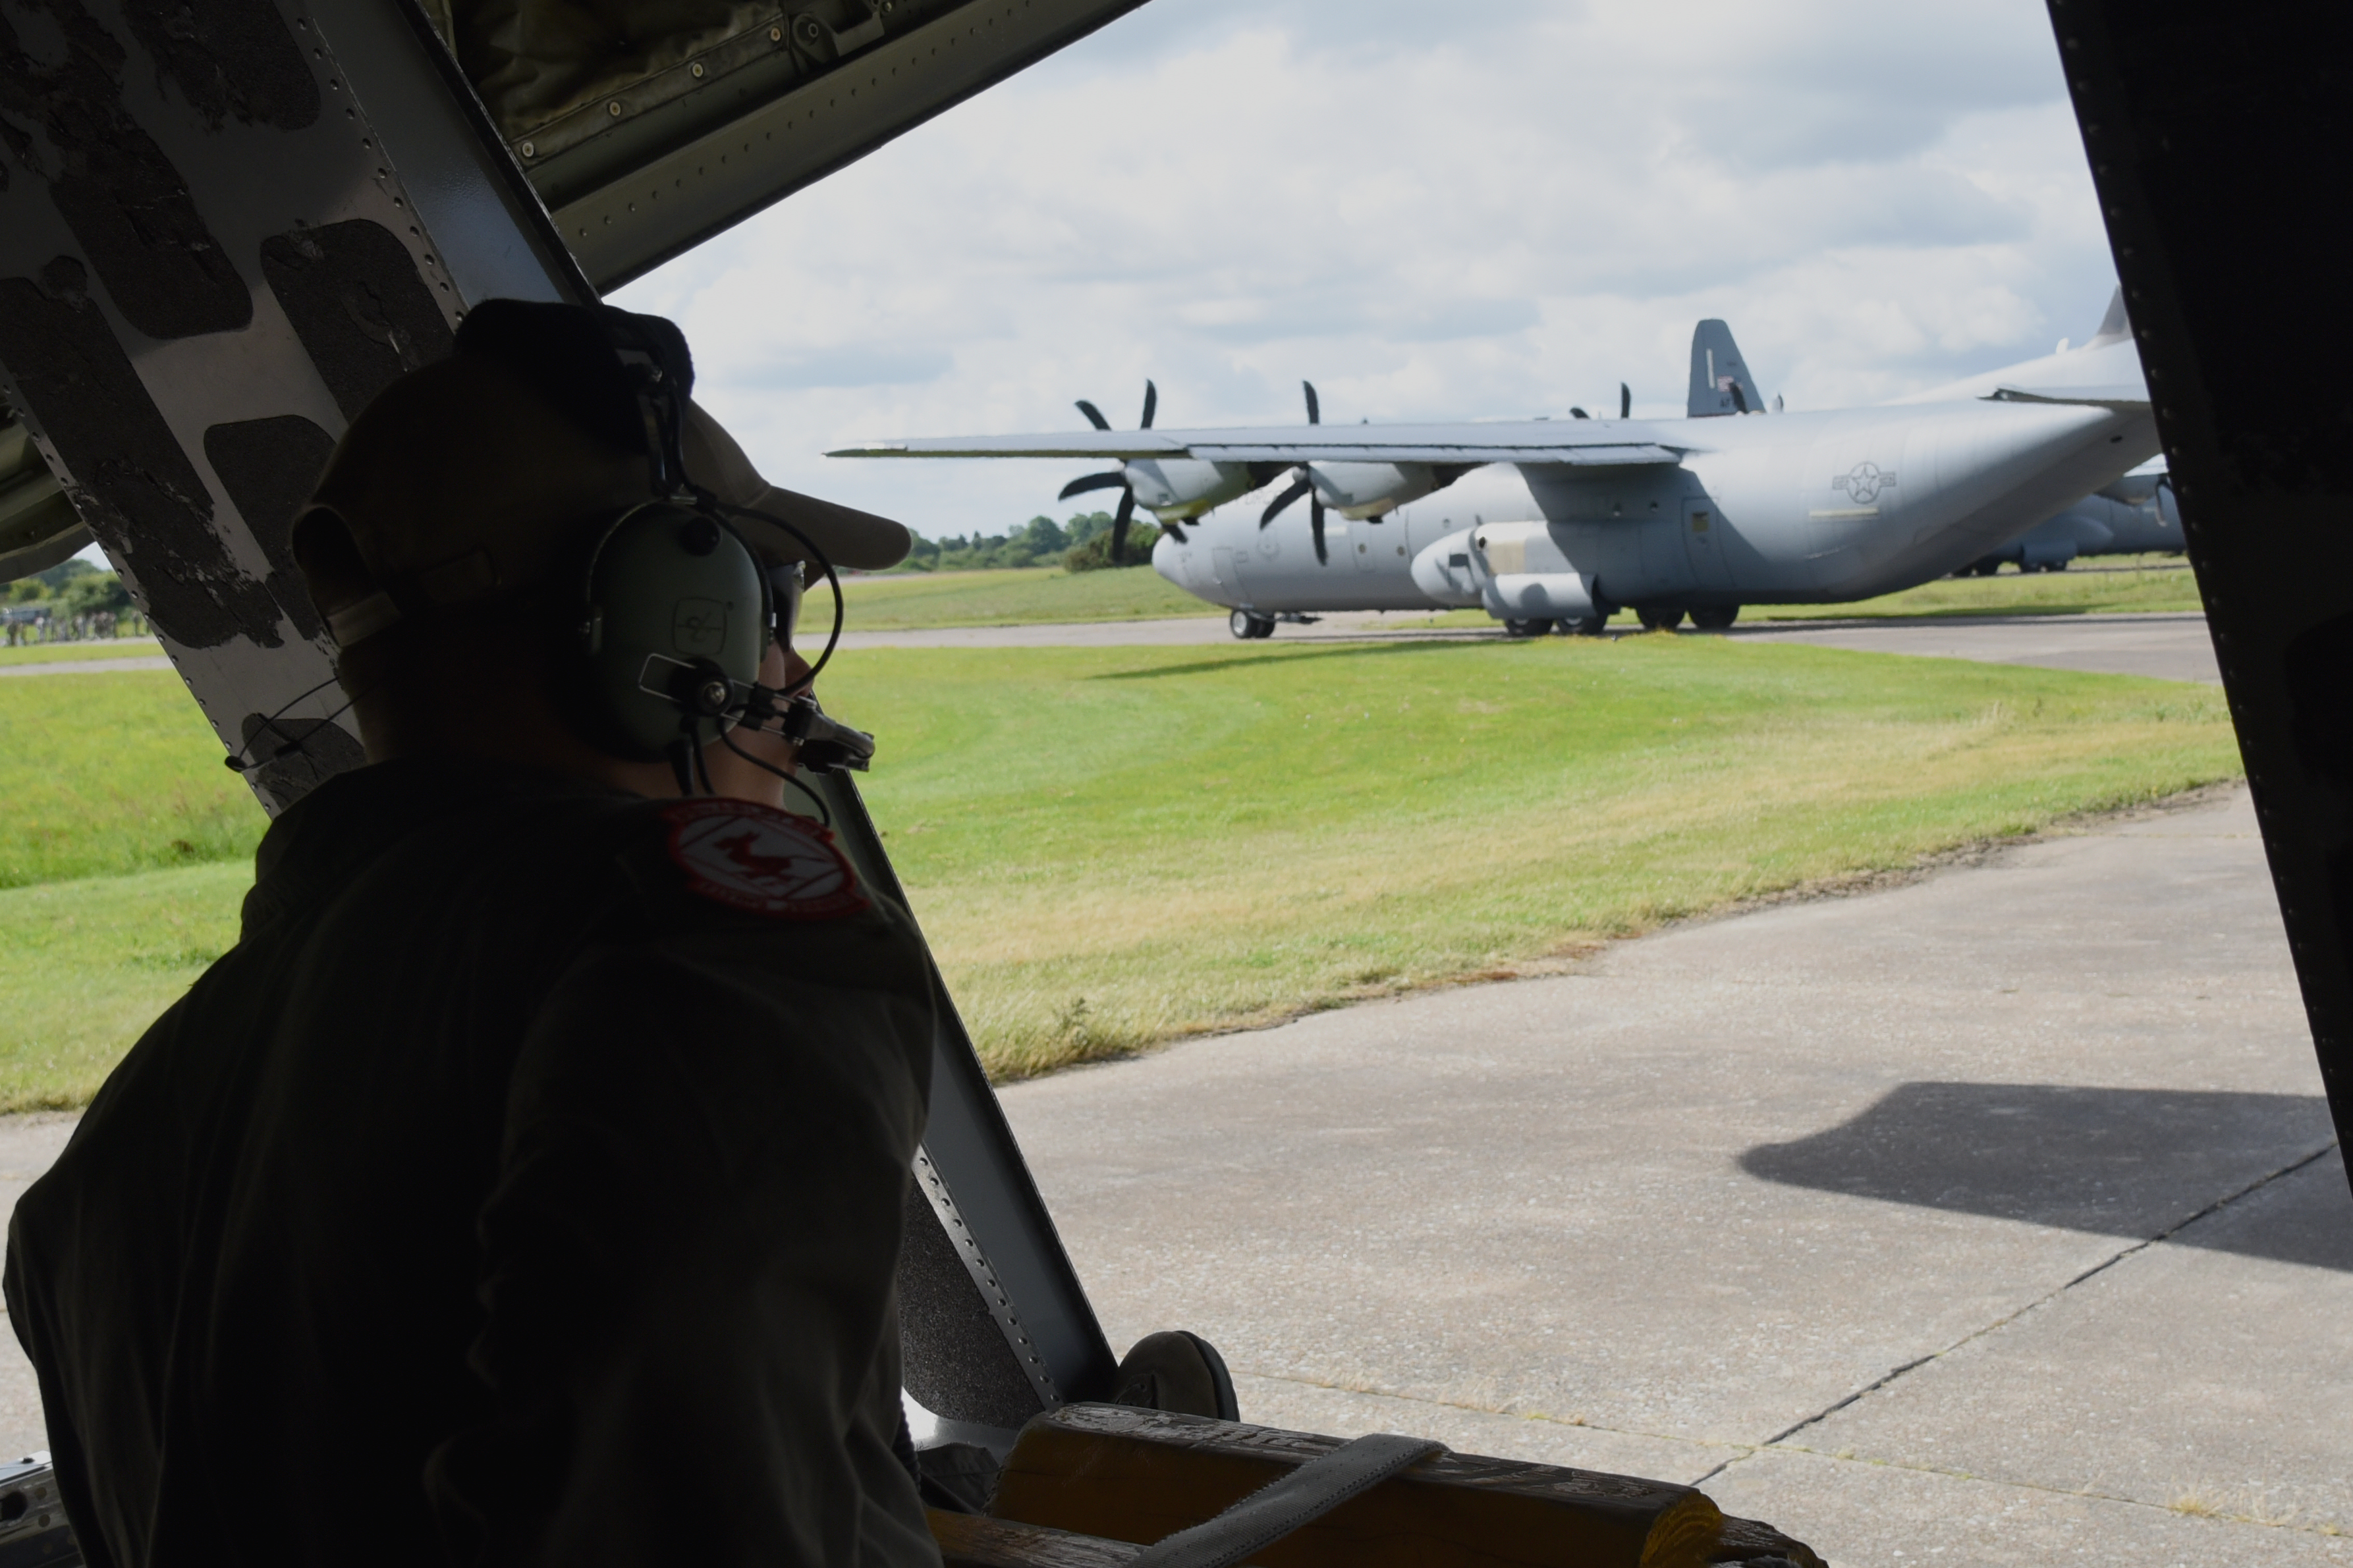 Senior Airman Shane Hague, loadmaster with the 815th Airlift Squadron, prepares to guide pilots as they back out of their parking spot before taking part in a paratroop drop over Normandy, France. This event commemorates the 73rd anniversary of D-Day, the largest multi-national amphibious landing and operational military airdrop in history, and highlights the U.S.' steadfast commitment to European allies and partners. Overall, approximately 400 U.S. service members from units in Europe and the U.S. are participating in ceremonial D-Day events from May 31 to June 7, 2017(U.S. Air Force photo by Staff Sgt. Nicholas Monteleone)